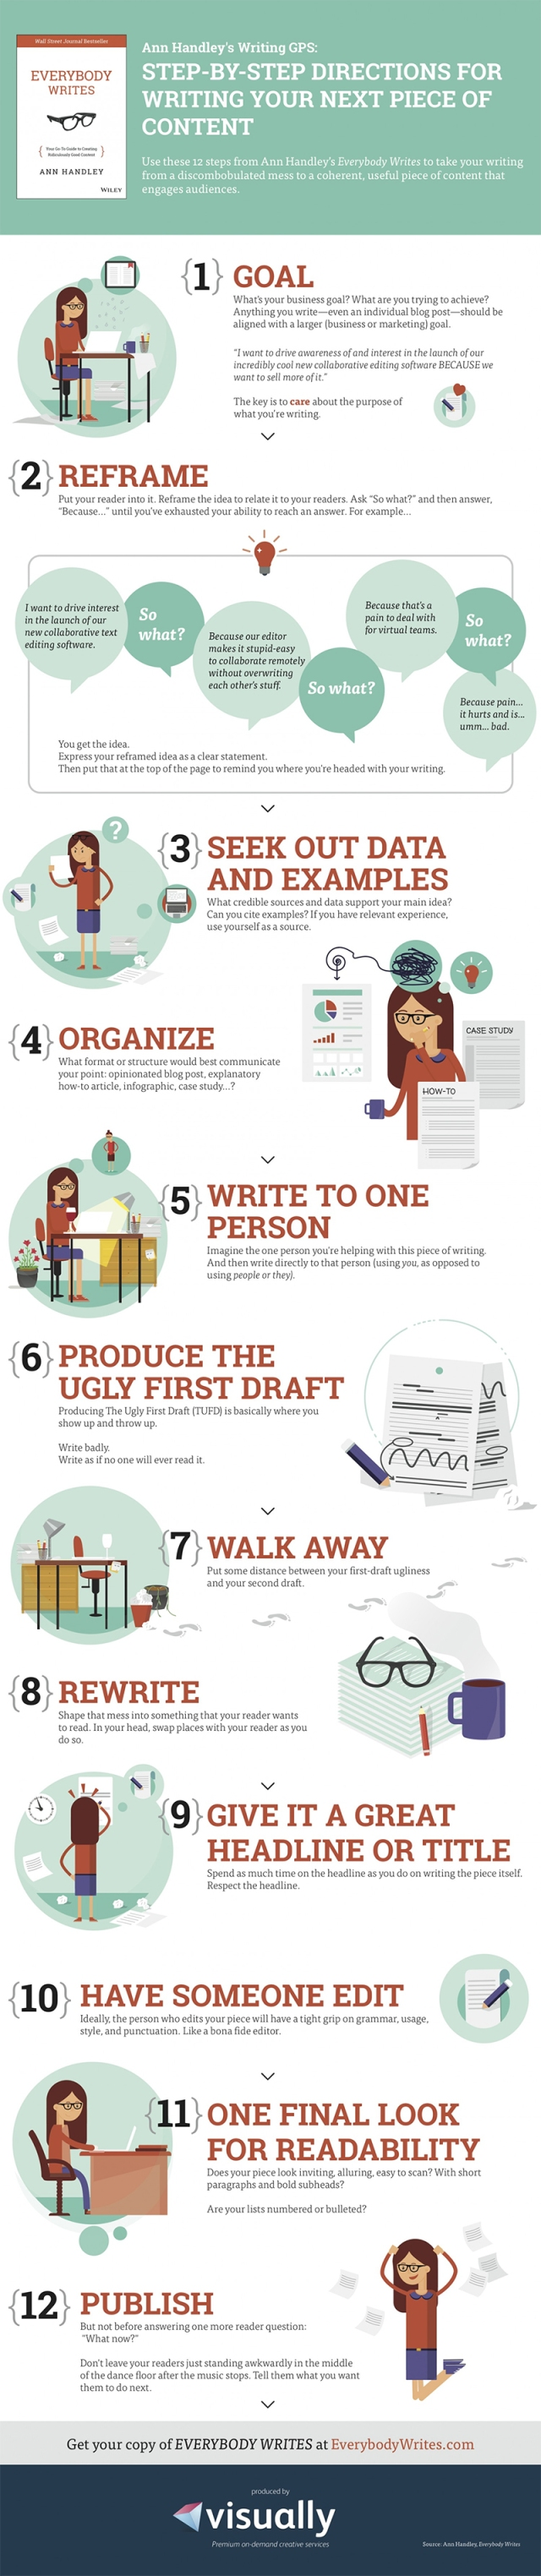 Don't Know How to Write Website Content Follow This Step by Step Guide